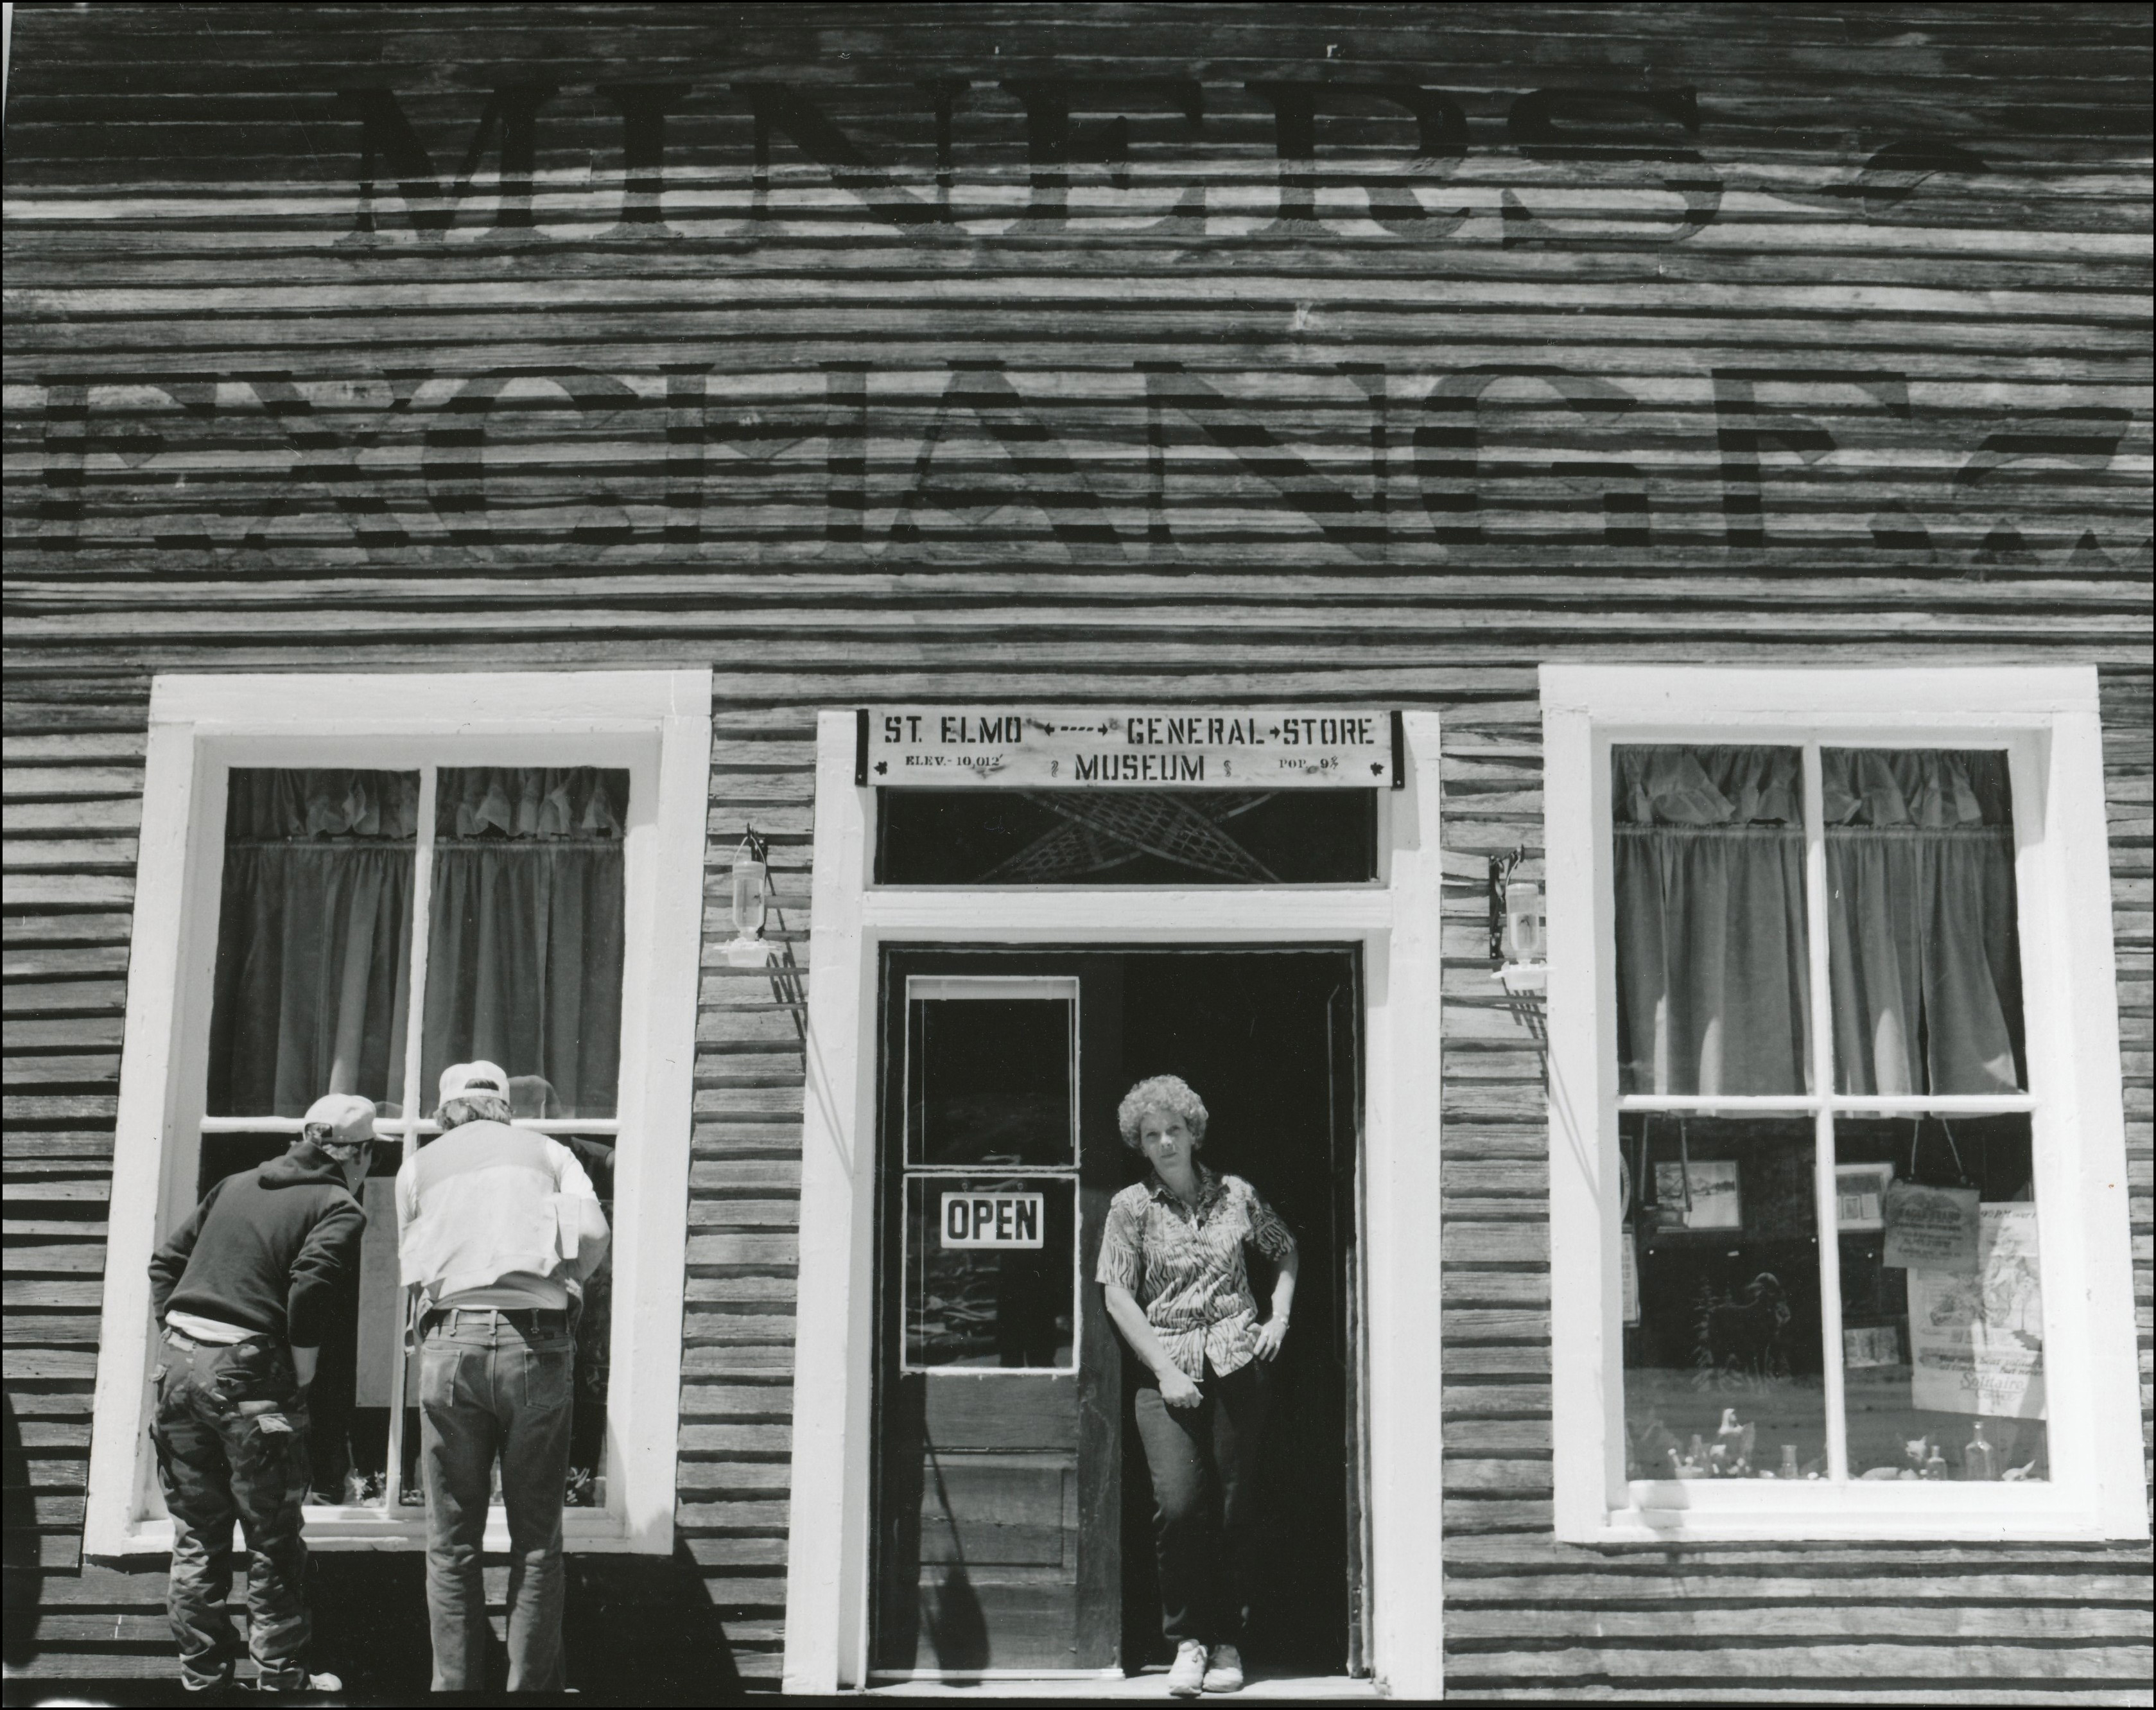 Front view of old general store with woman standing on open door and two men looking in the window